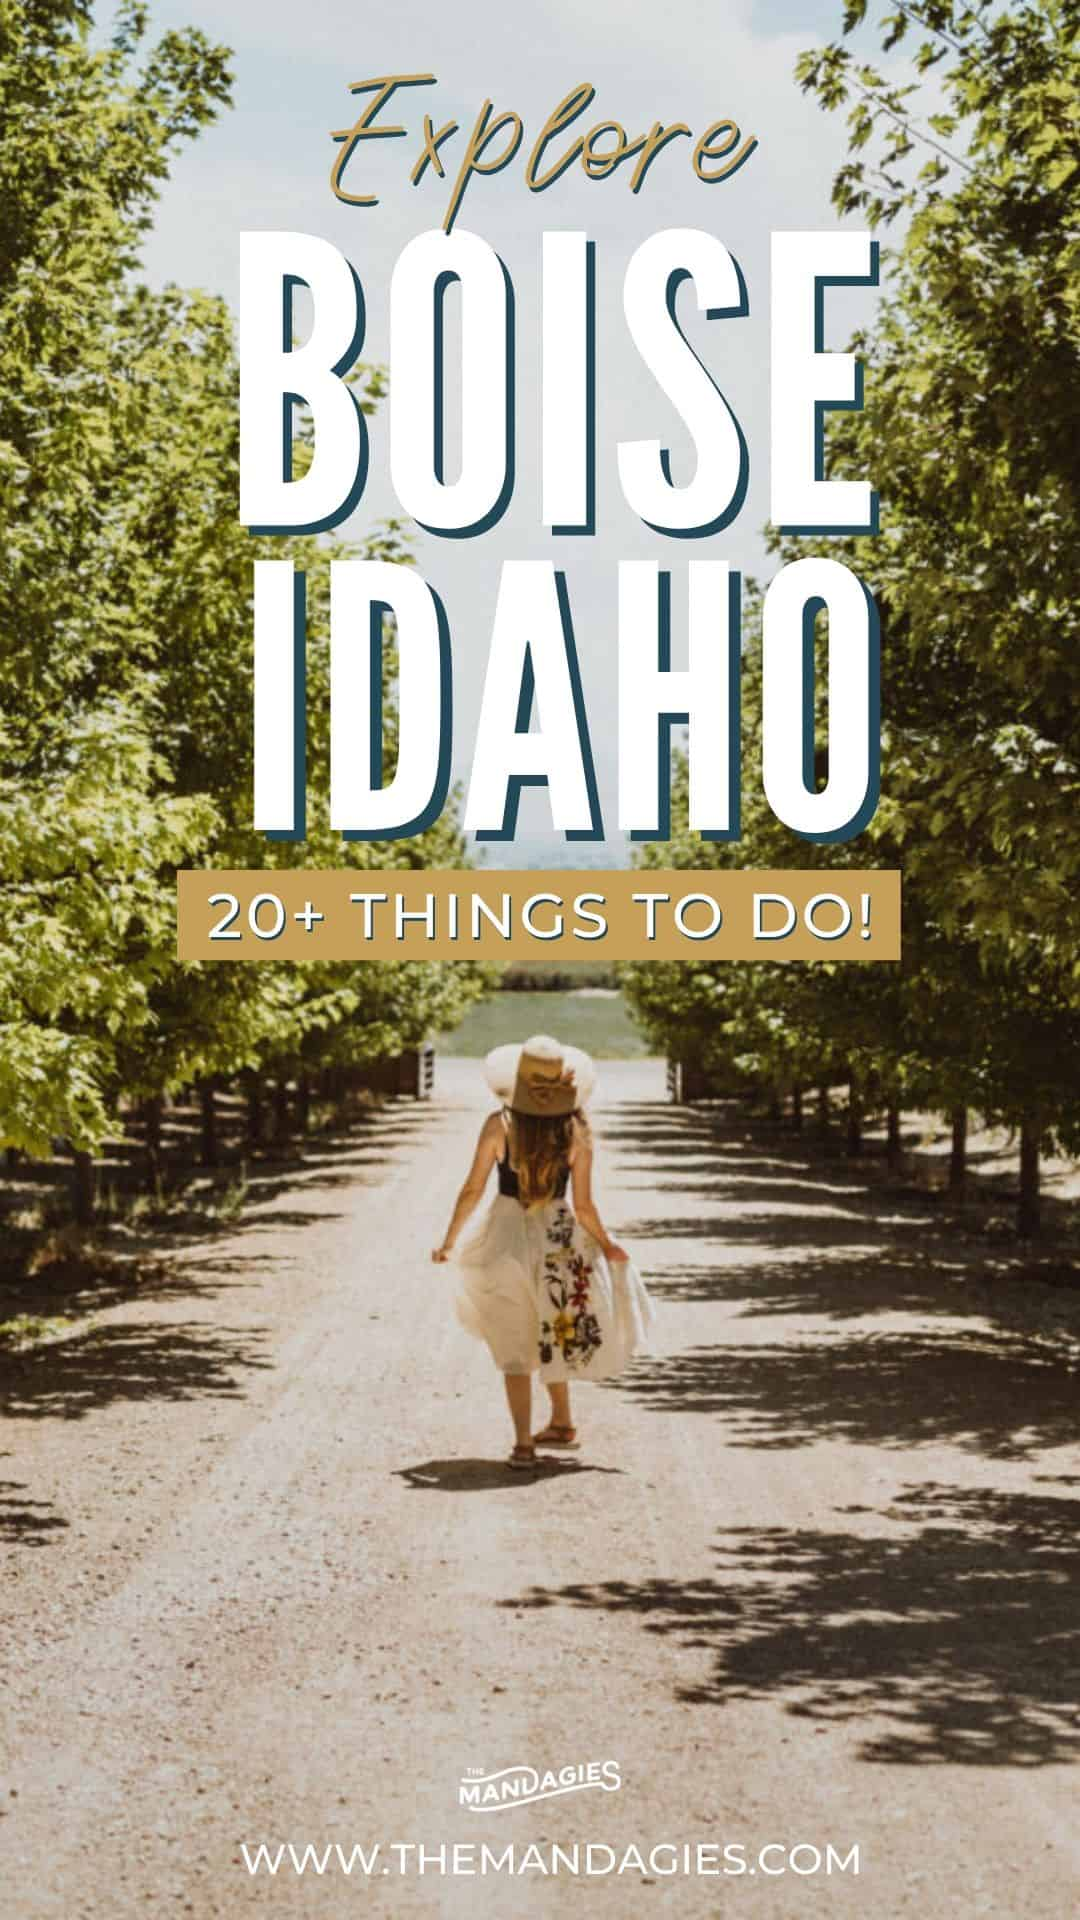 Wondering what cool things do to in Boise, Idaho are? We're sharing the ultimate Boise, Idaho bucket list, complete with restaurants, best hikes, day trips from Boise, and so much more! Save this post for your next epic trip to Boise, Idaho! #boise #idaho #southwestidaho #gemstate #travel #USAtravel #roadtrip #explore #hiking #hotsprings